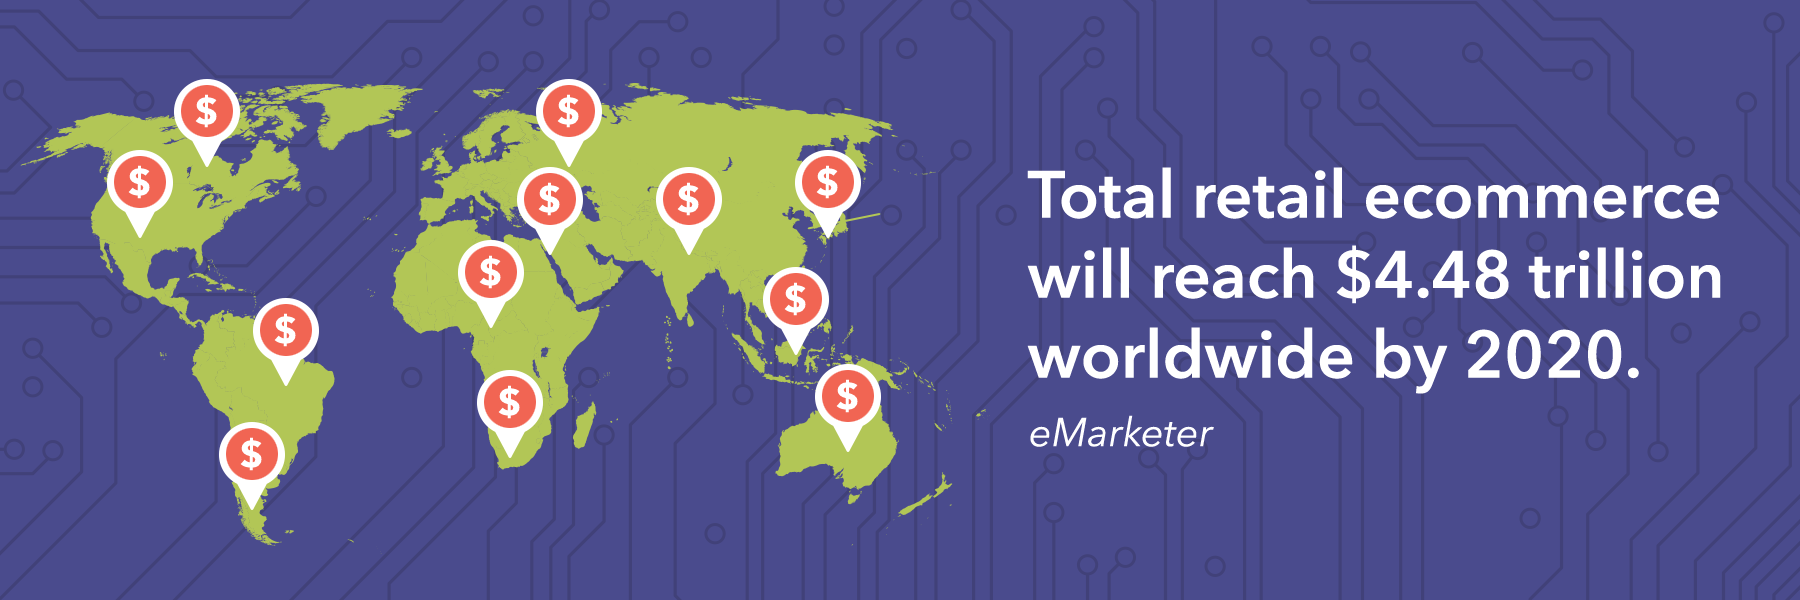 Total retail ecommerce will reach 4.48 trillion worldwide by 2020.